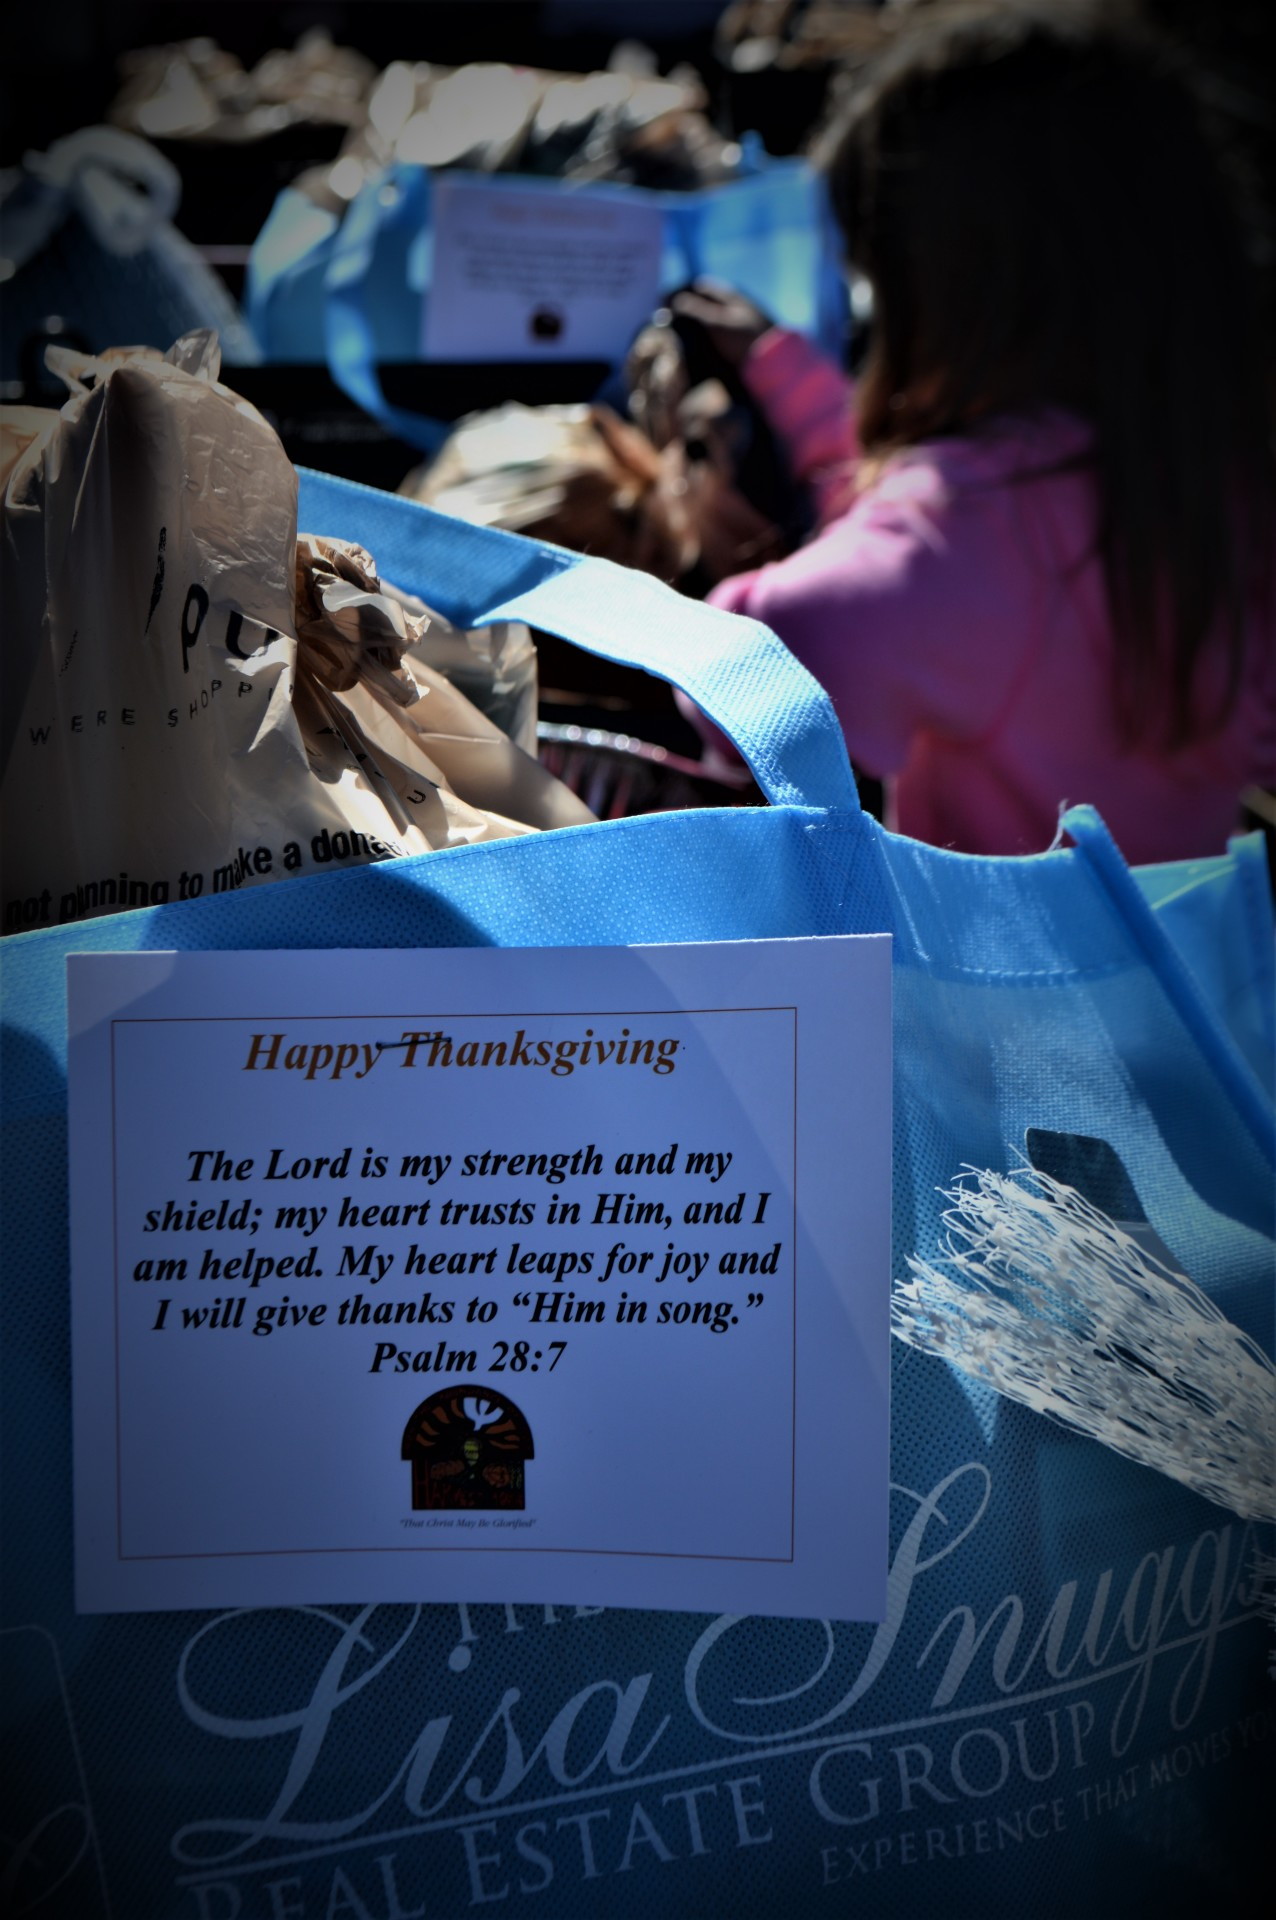 Every year we provide Thanksgiving and Christmas meals to those in need.